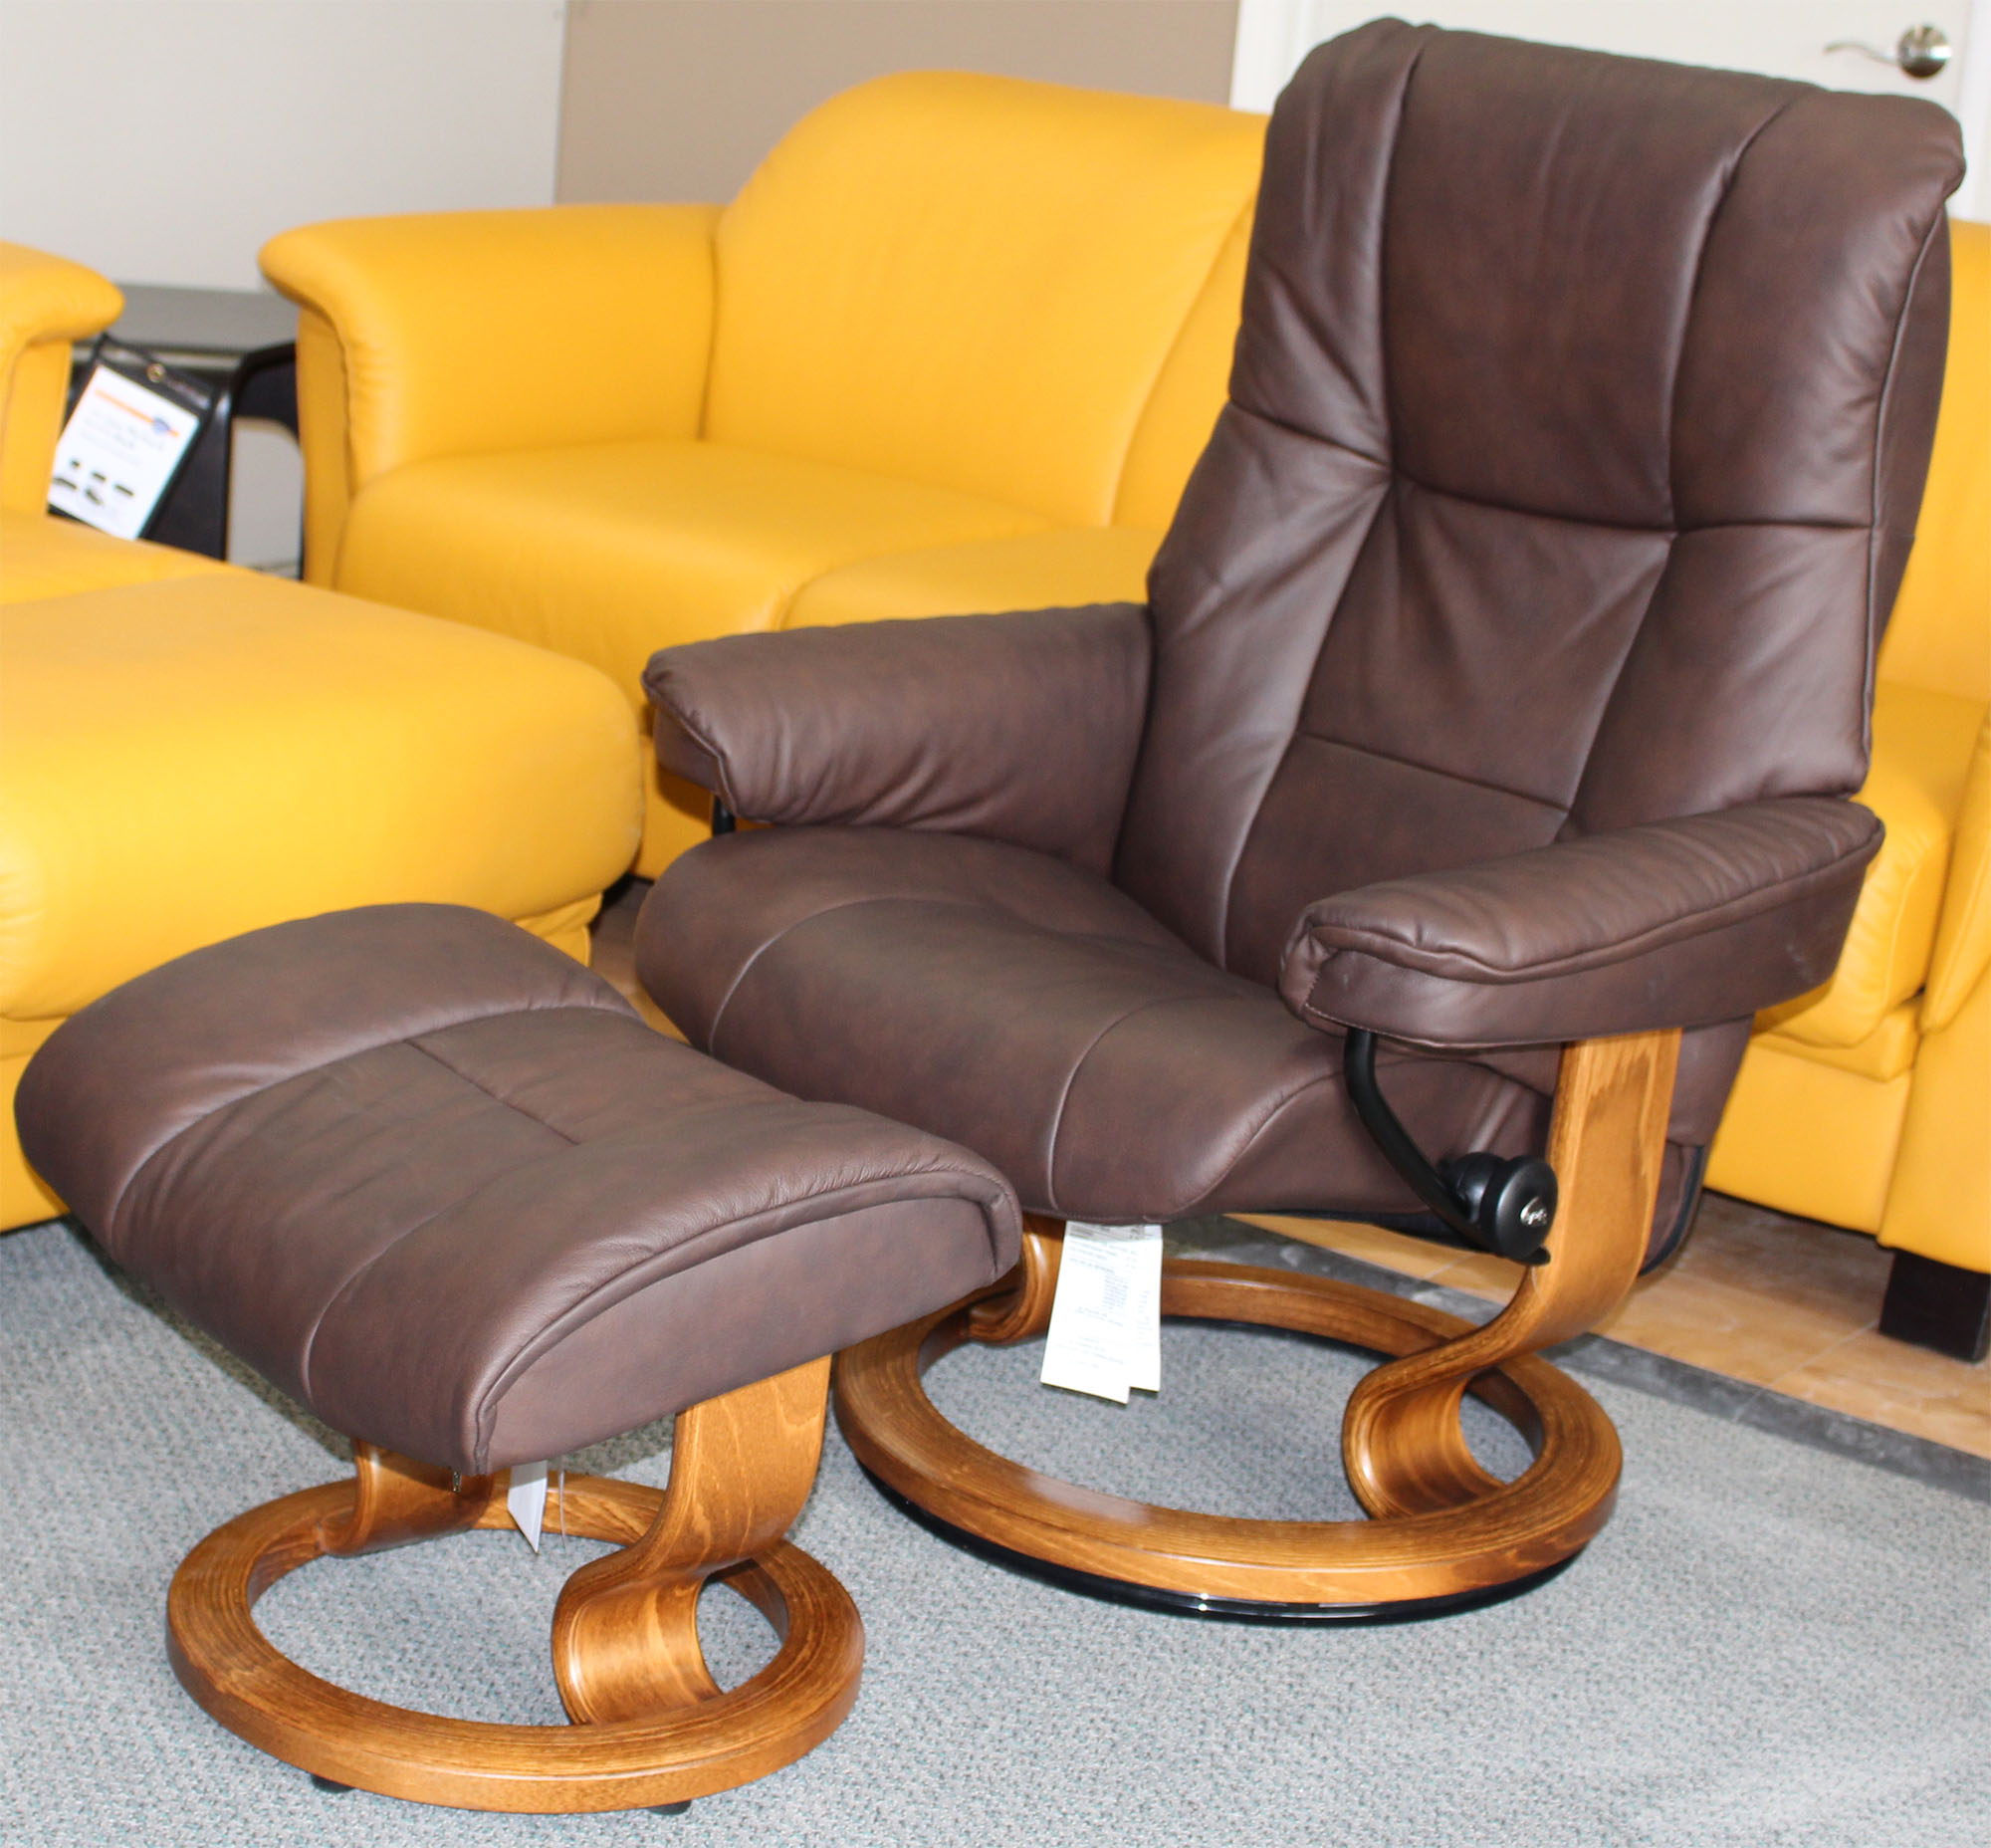 Ekornes Stressless Stressless Mayfair Paloma Chocolate Leather Recliner Chair And Ottoman By Ekornes